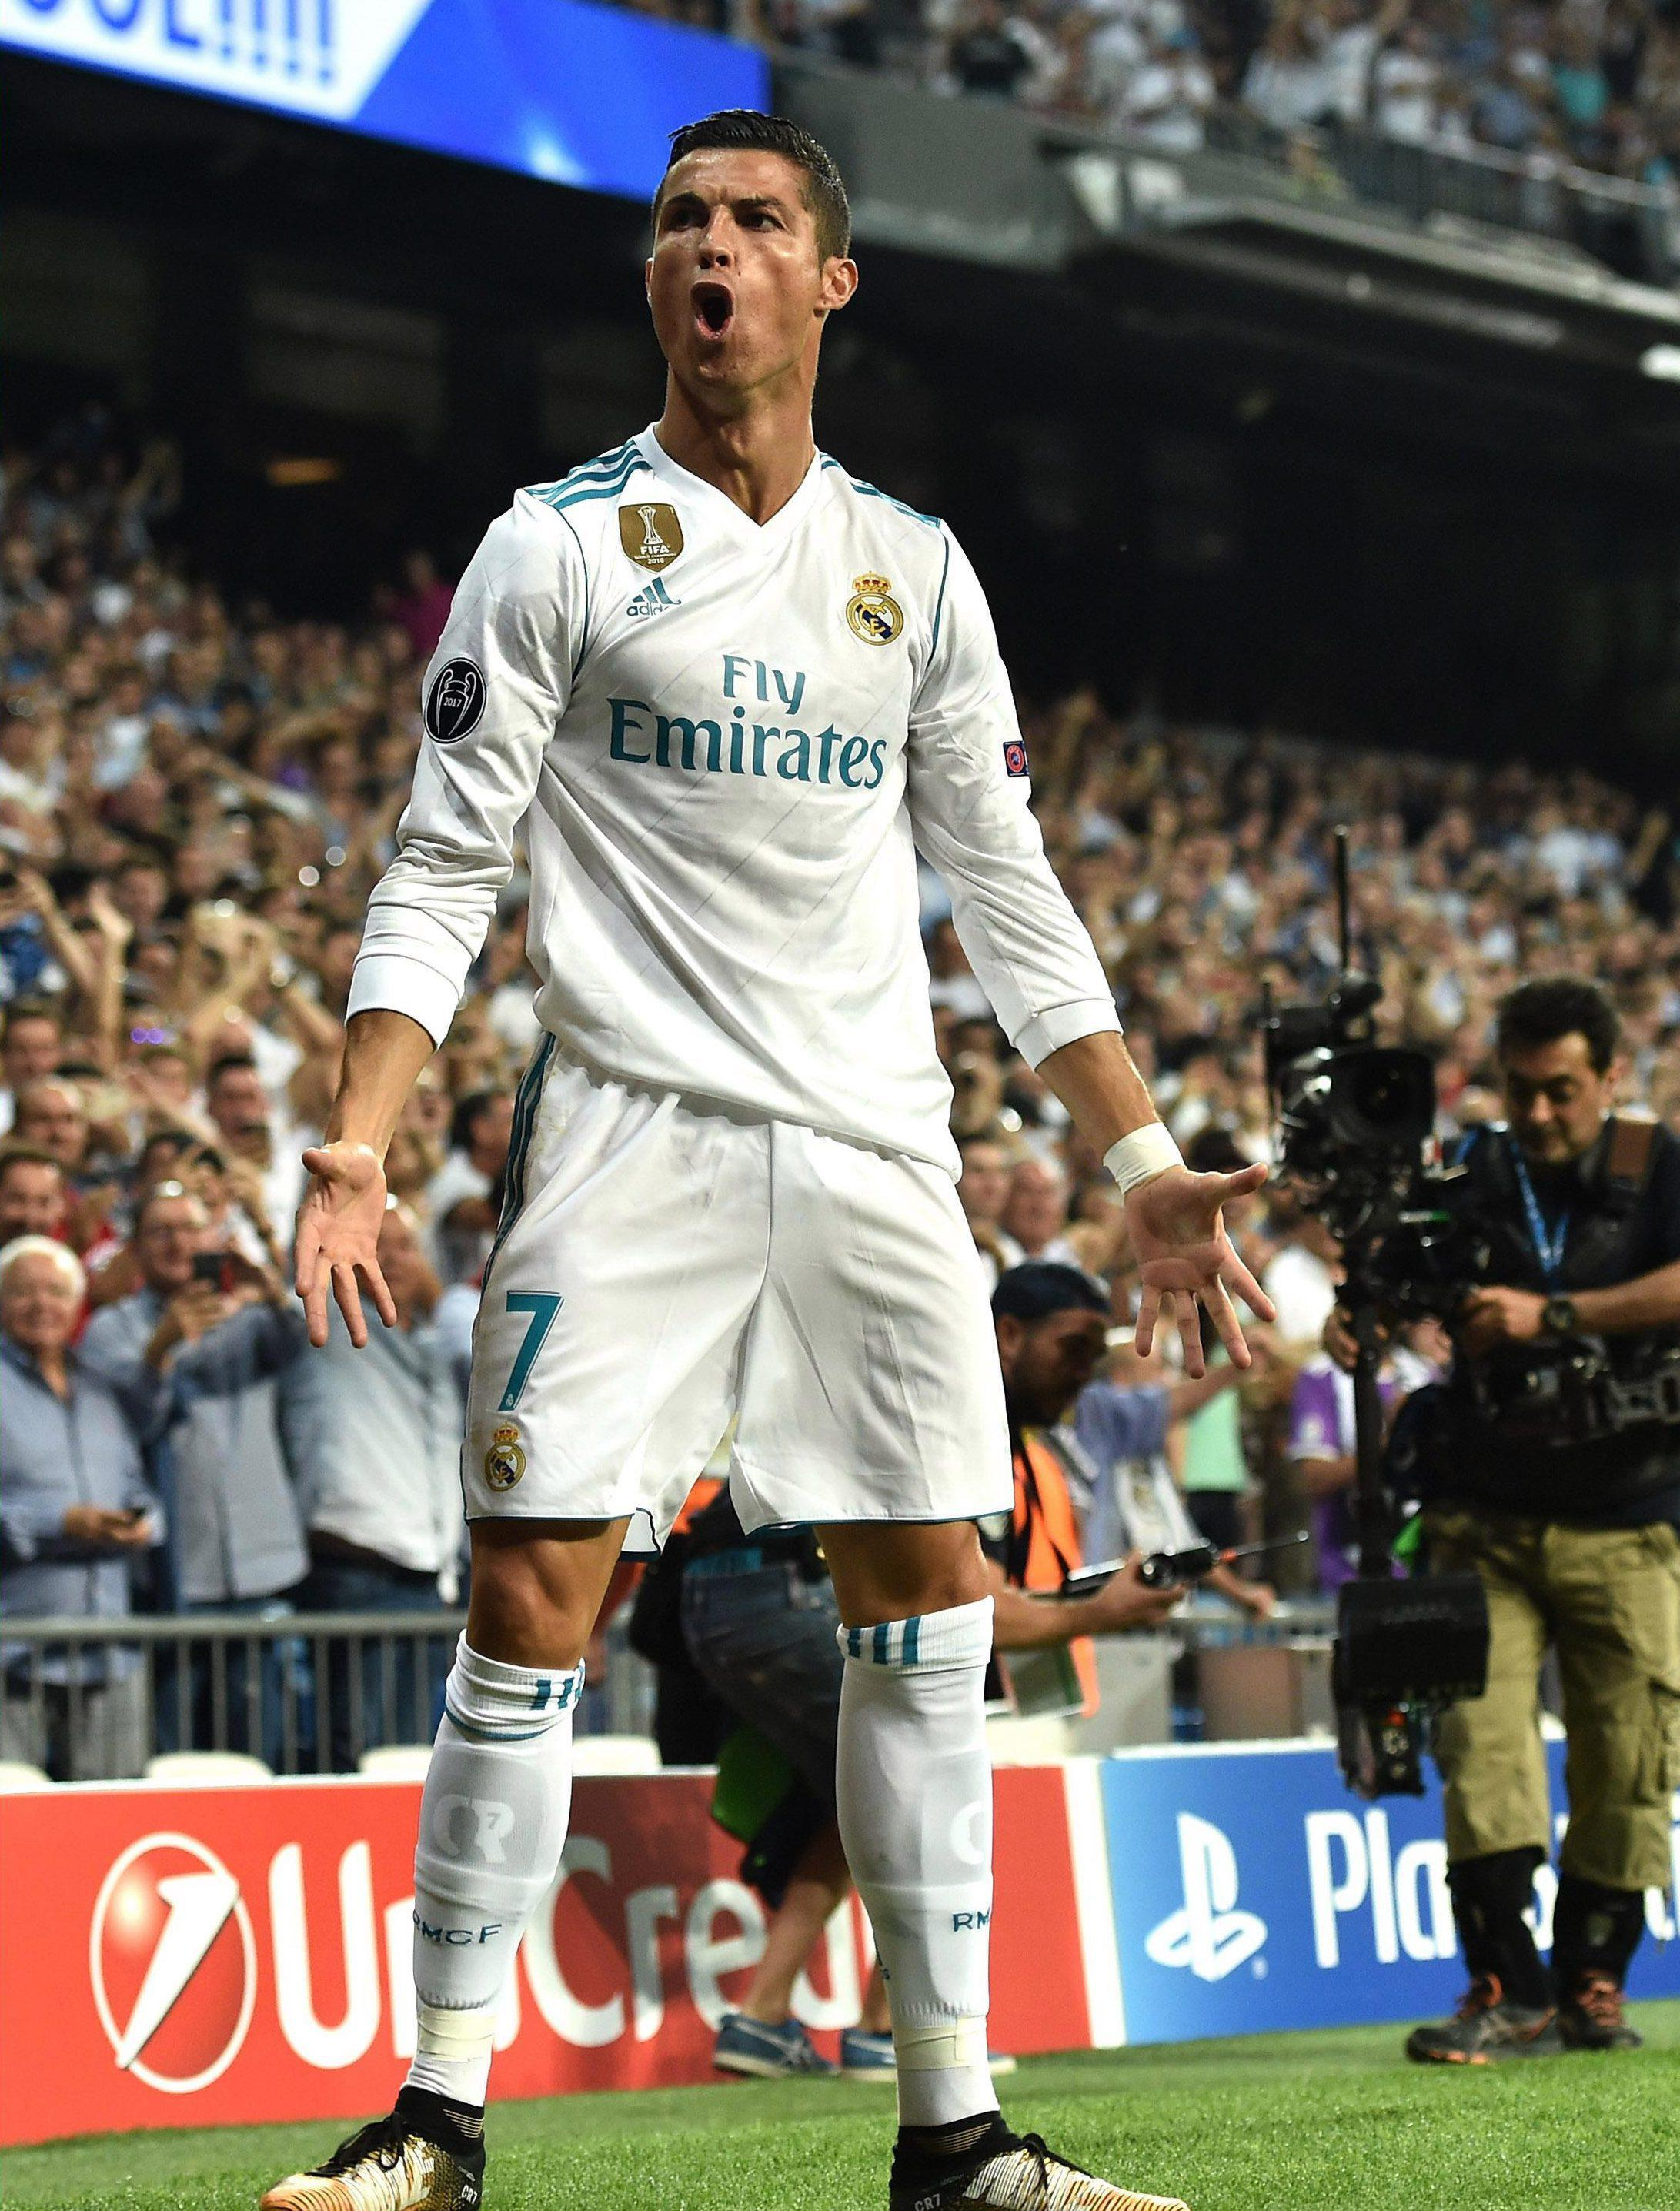 Cristiano Ronaldo kicked off Champions League campaign with brace